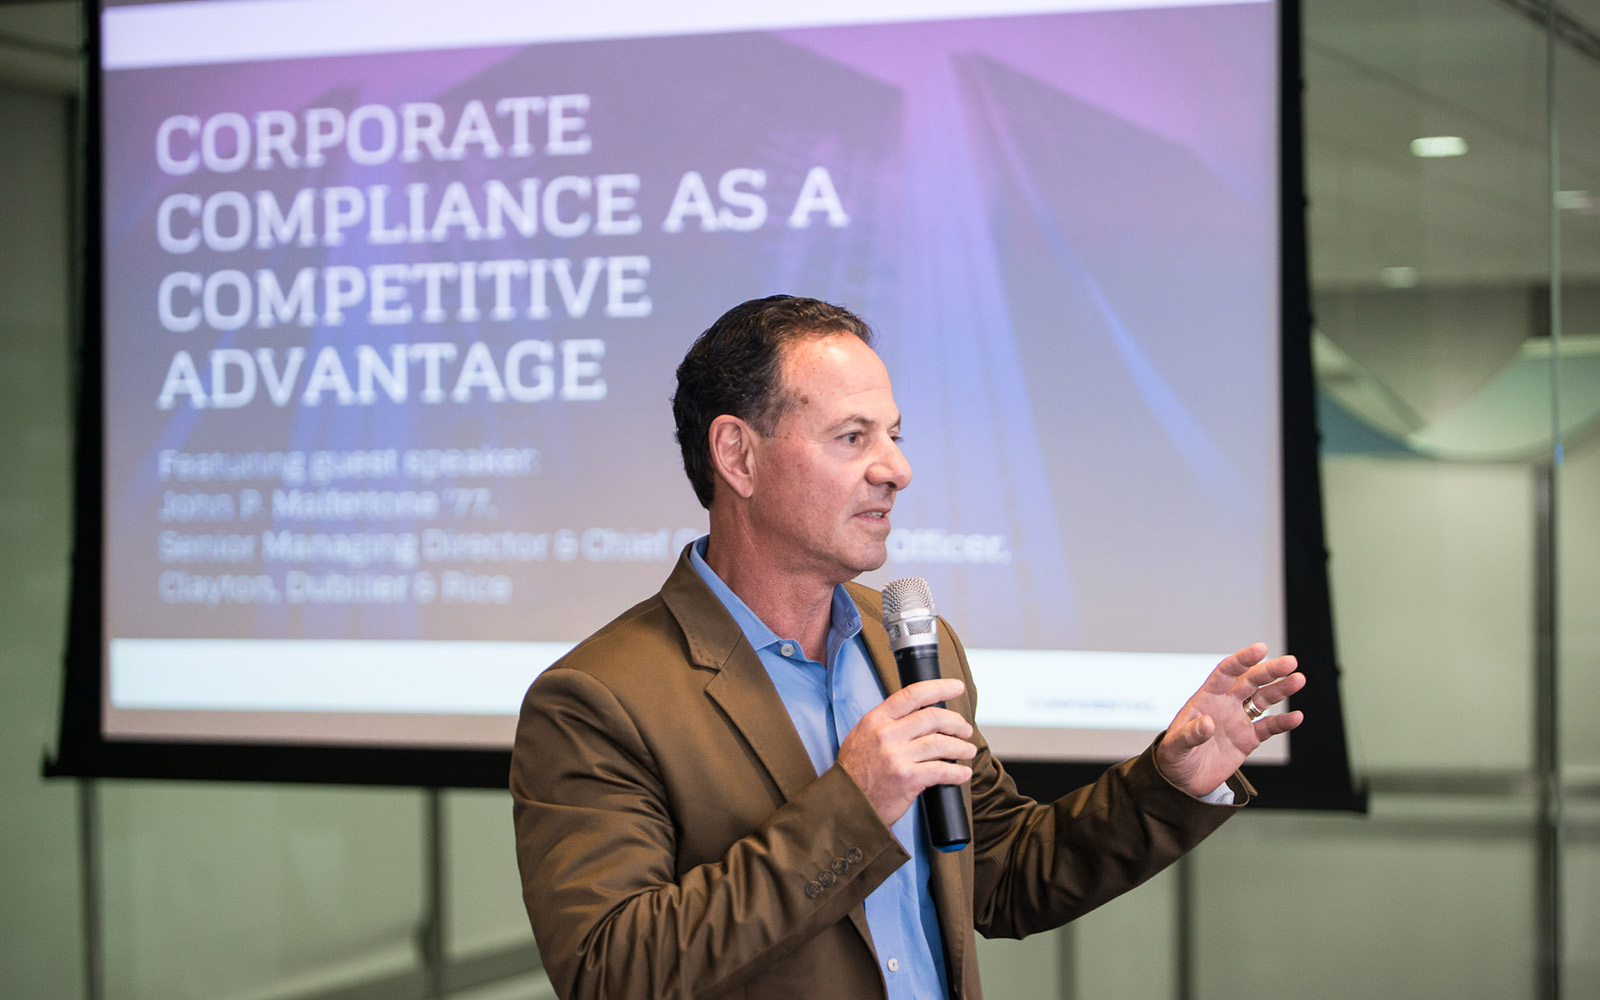 John Malfettone '77 speaks about corporate compliance as a competitive advantage. (Nathan Oldham/UConn School of Business)